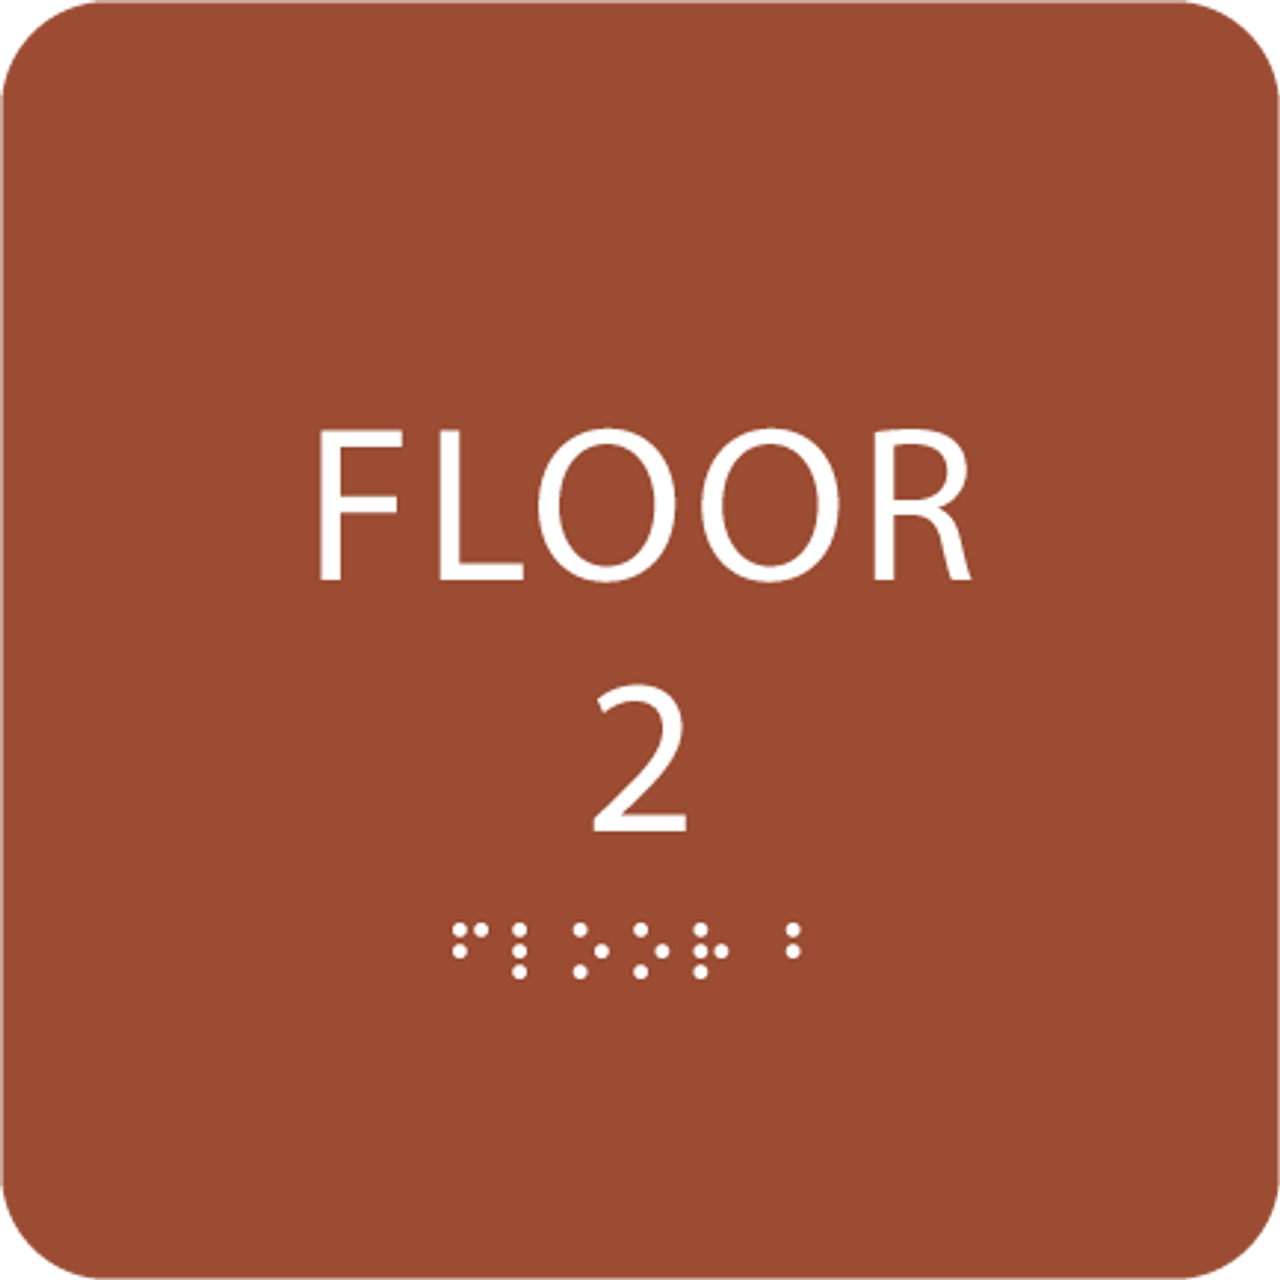 Orange Floor 2 Identification Sign